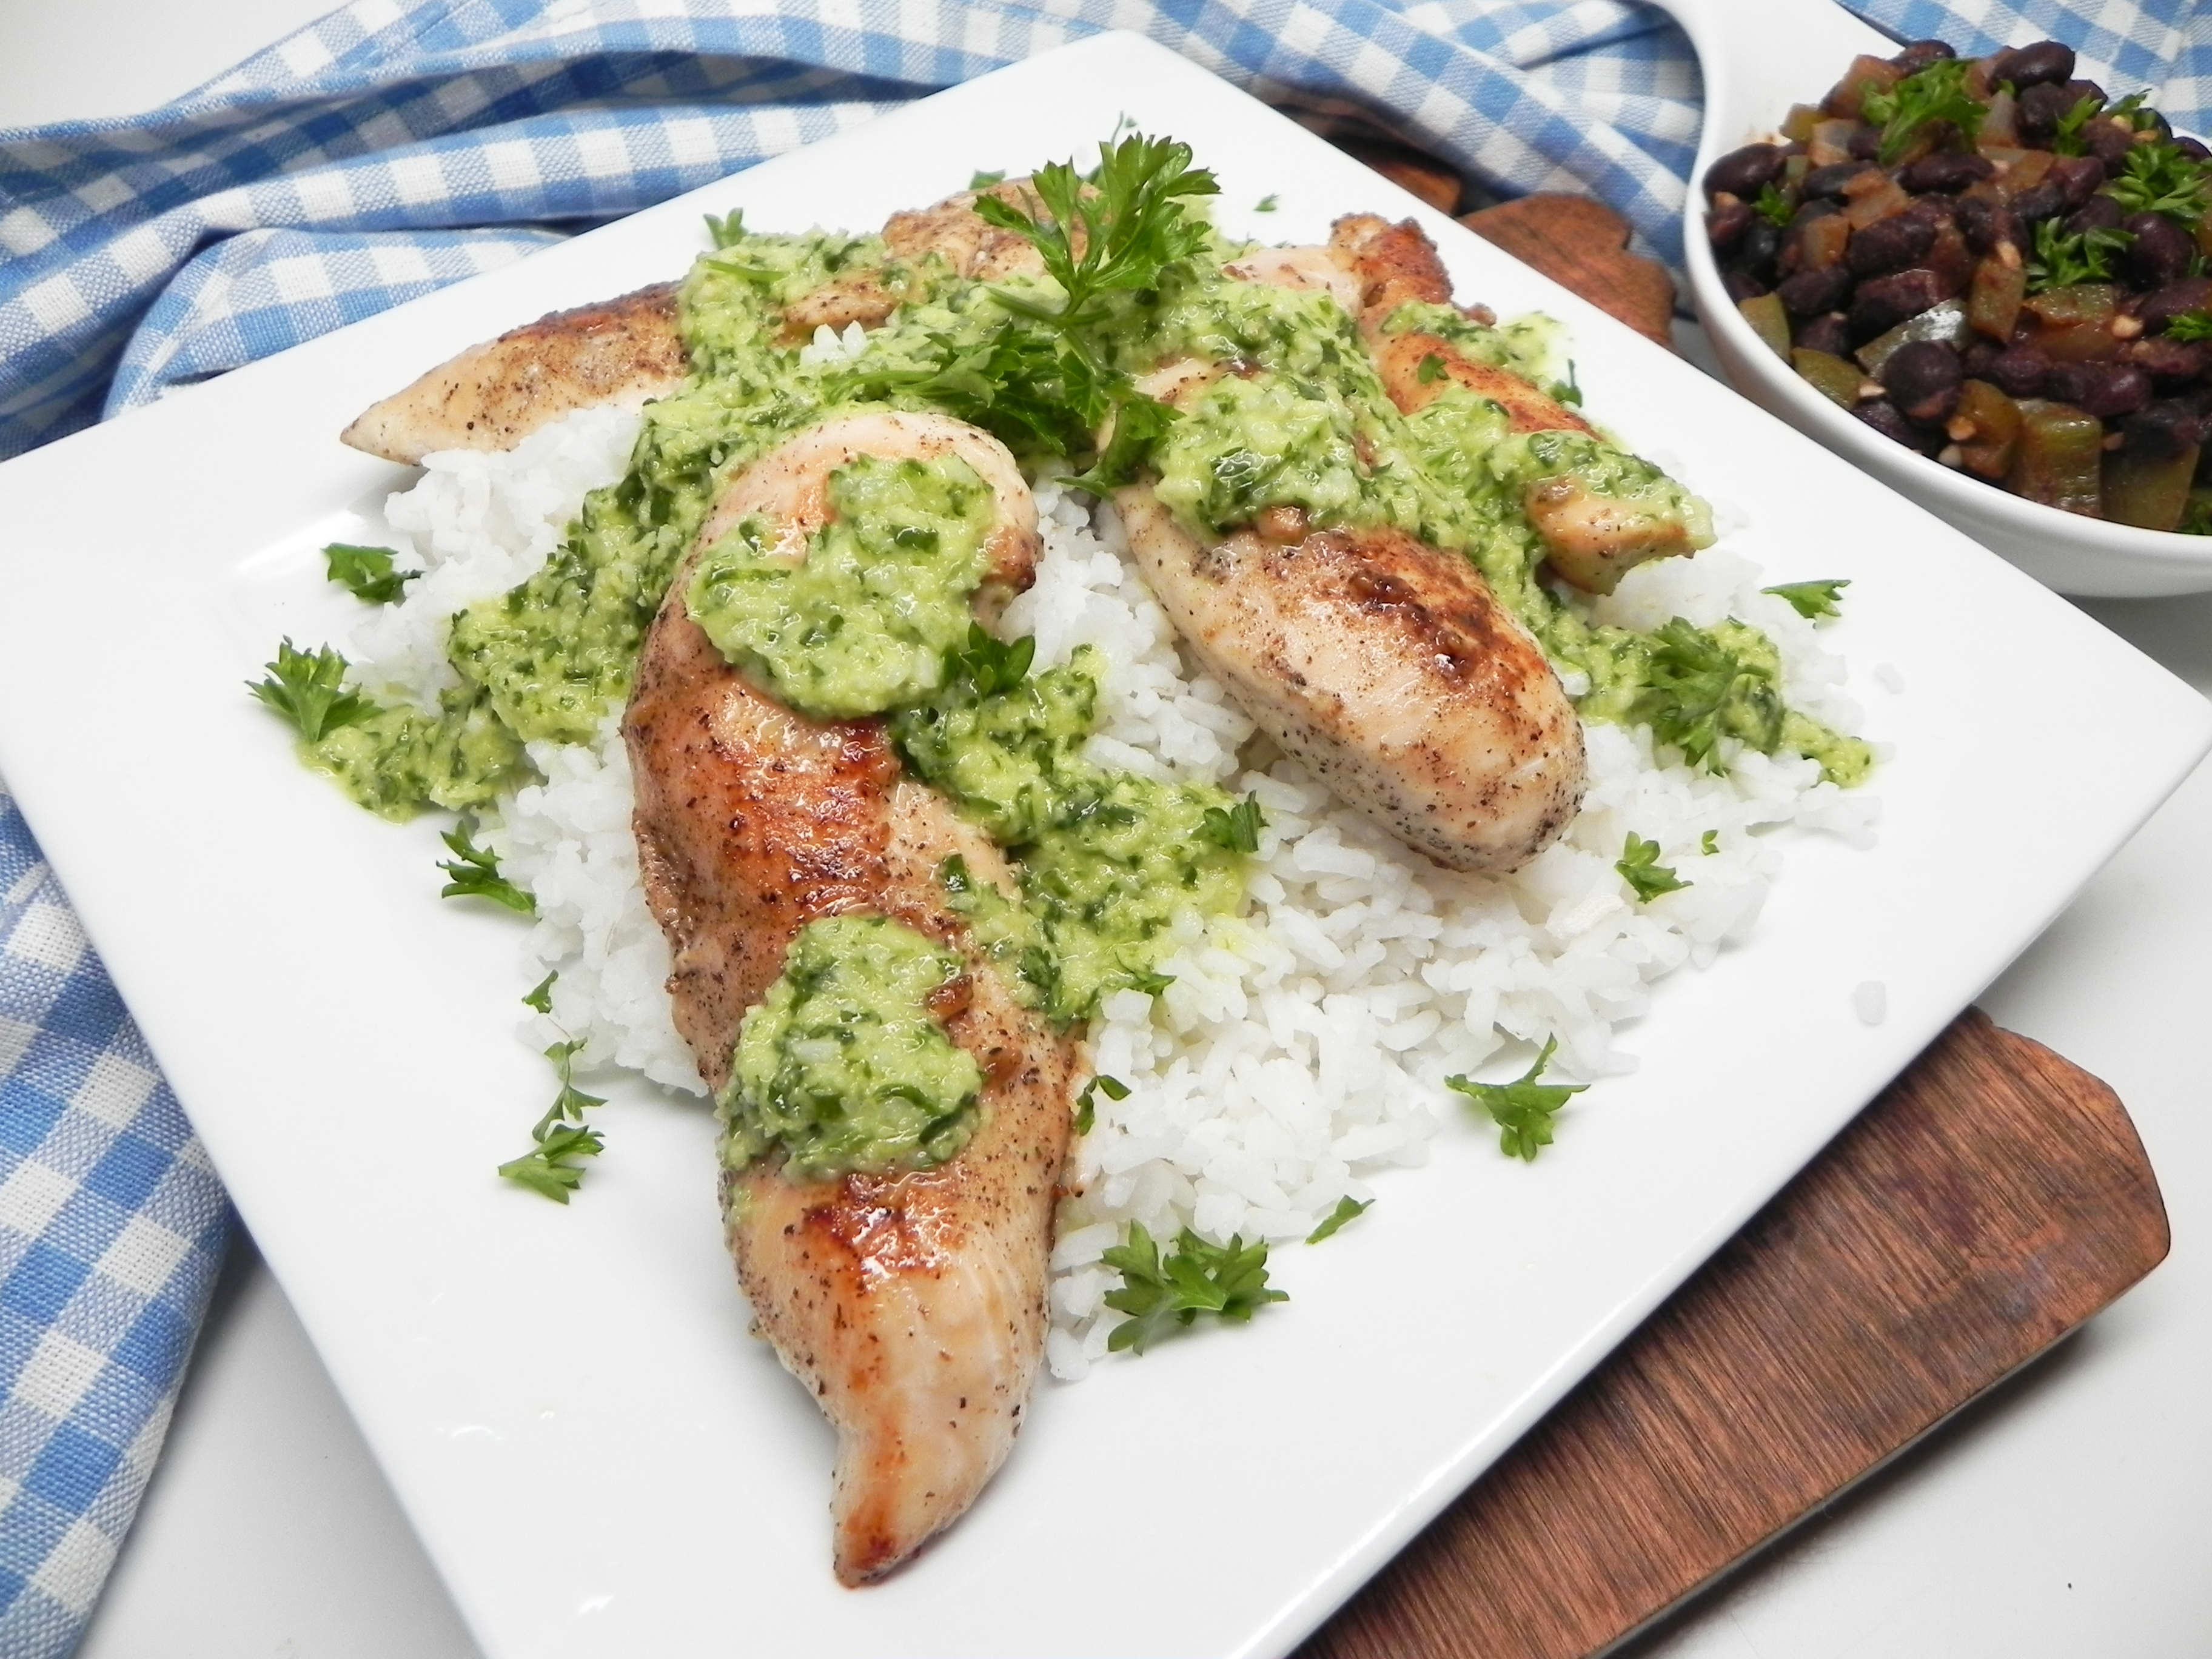 Pan-Seared Chimichurri Chicken burgefam